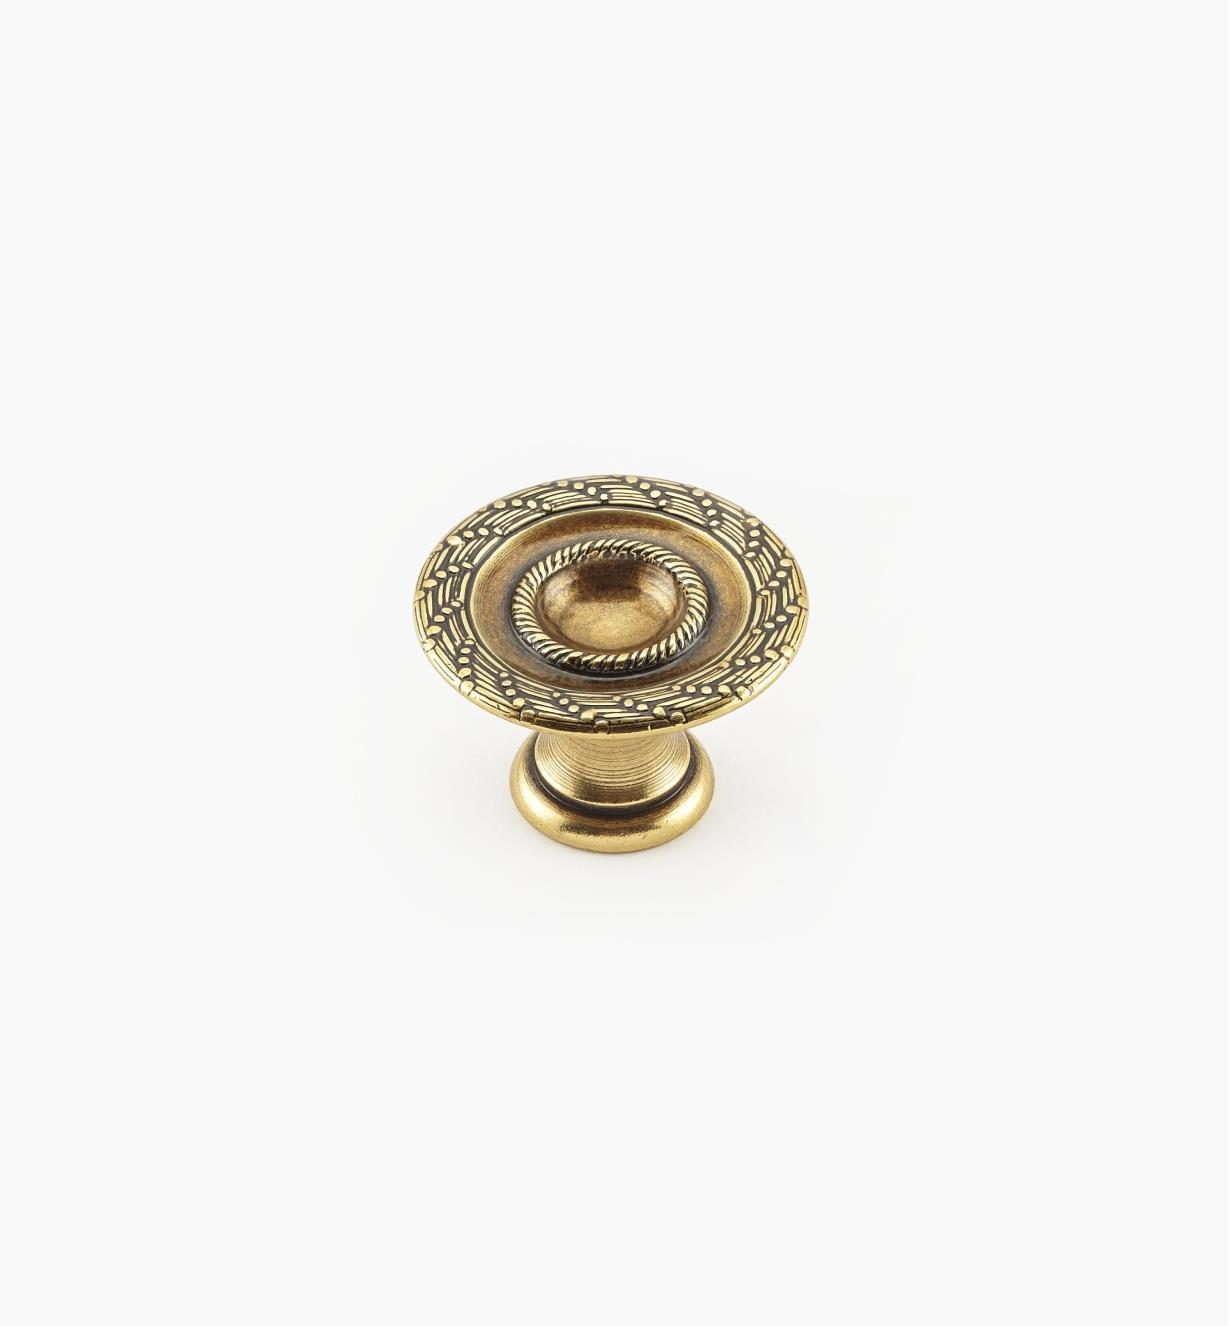 01A9130 - 30mm x 19mm Rope/Reed Burnished Bronze Knob